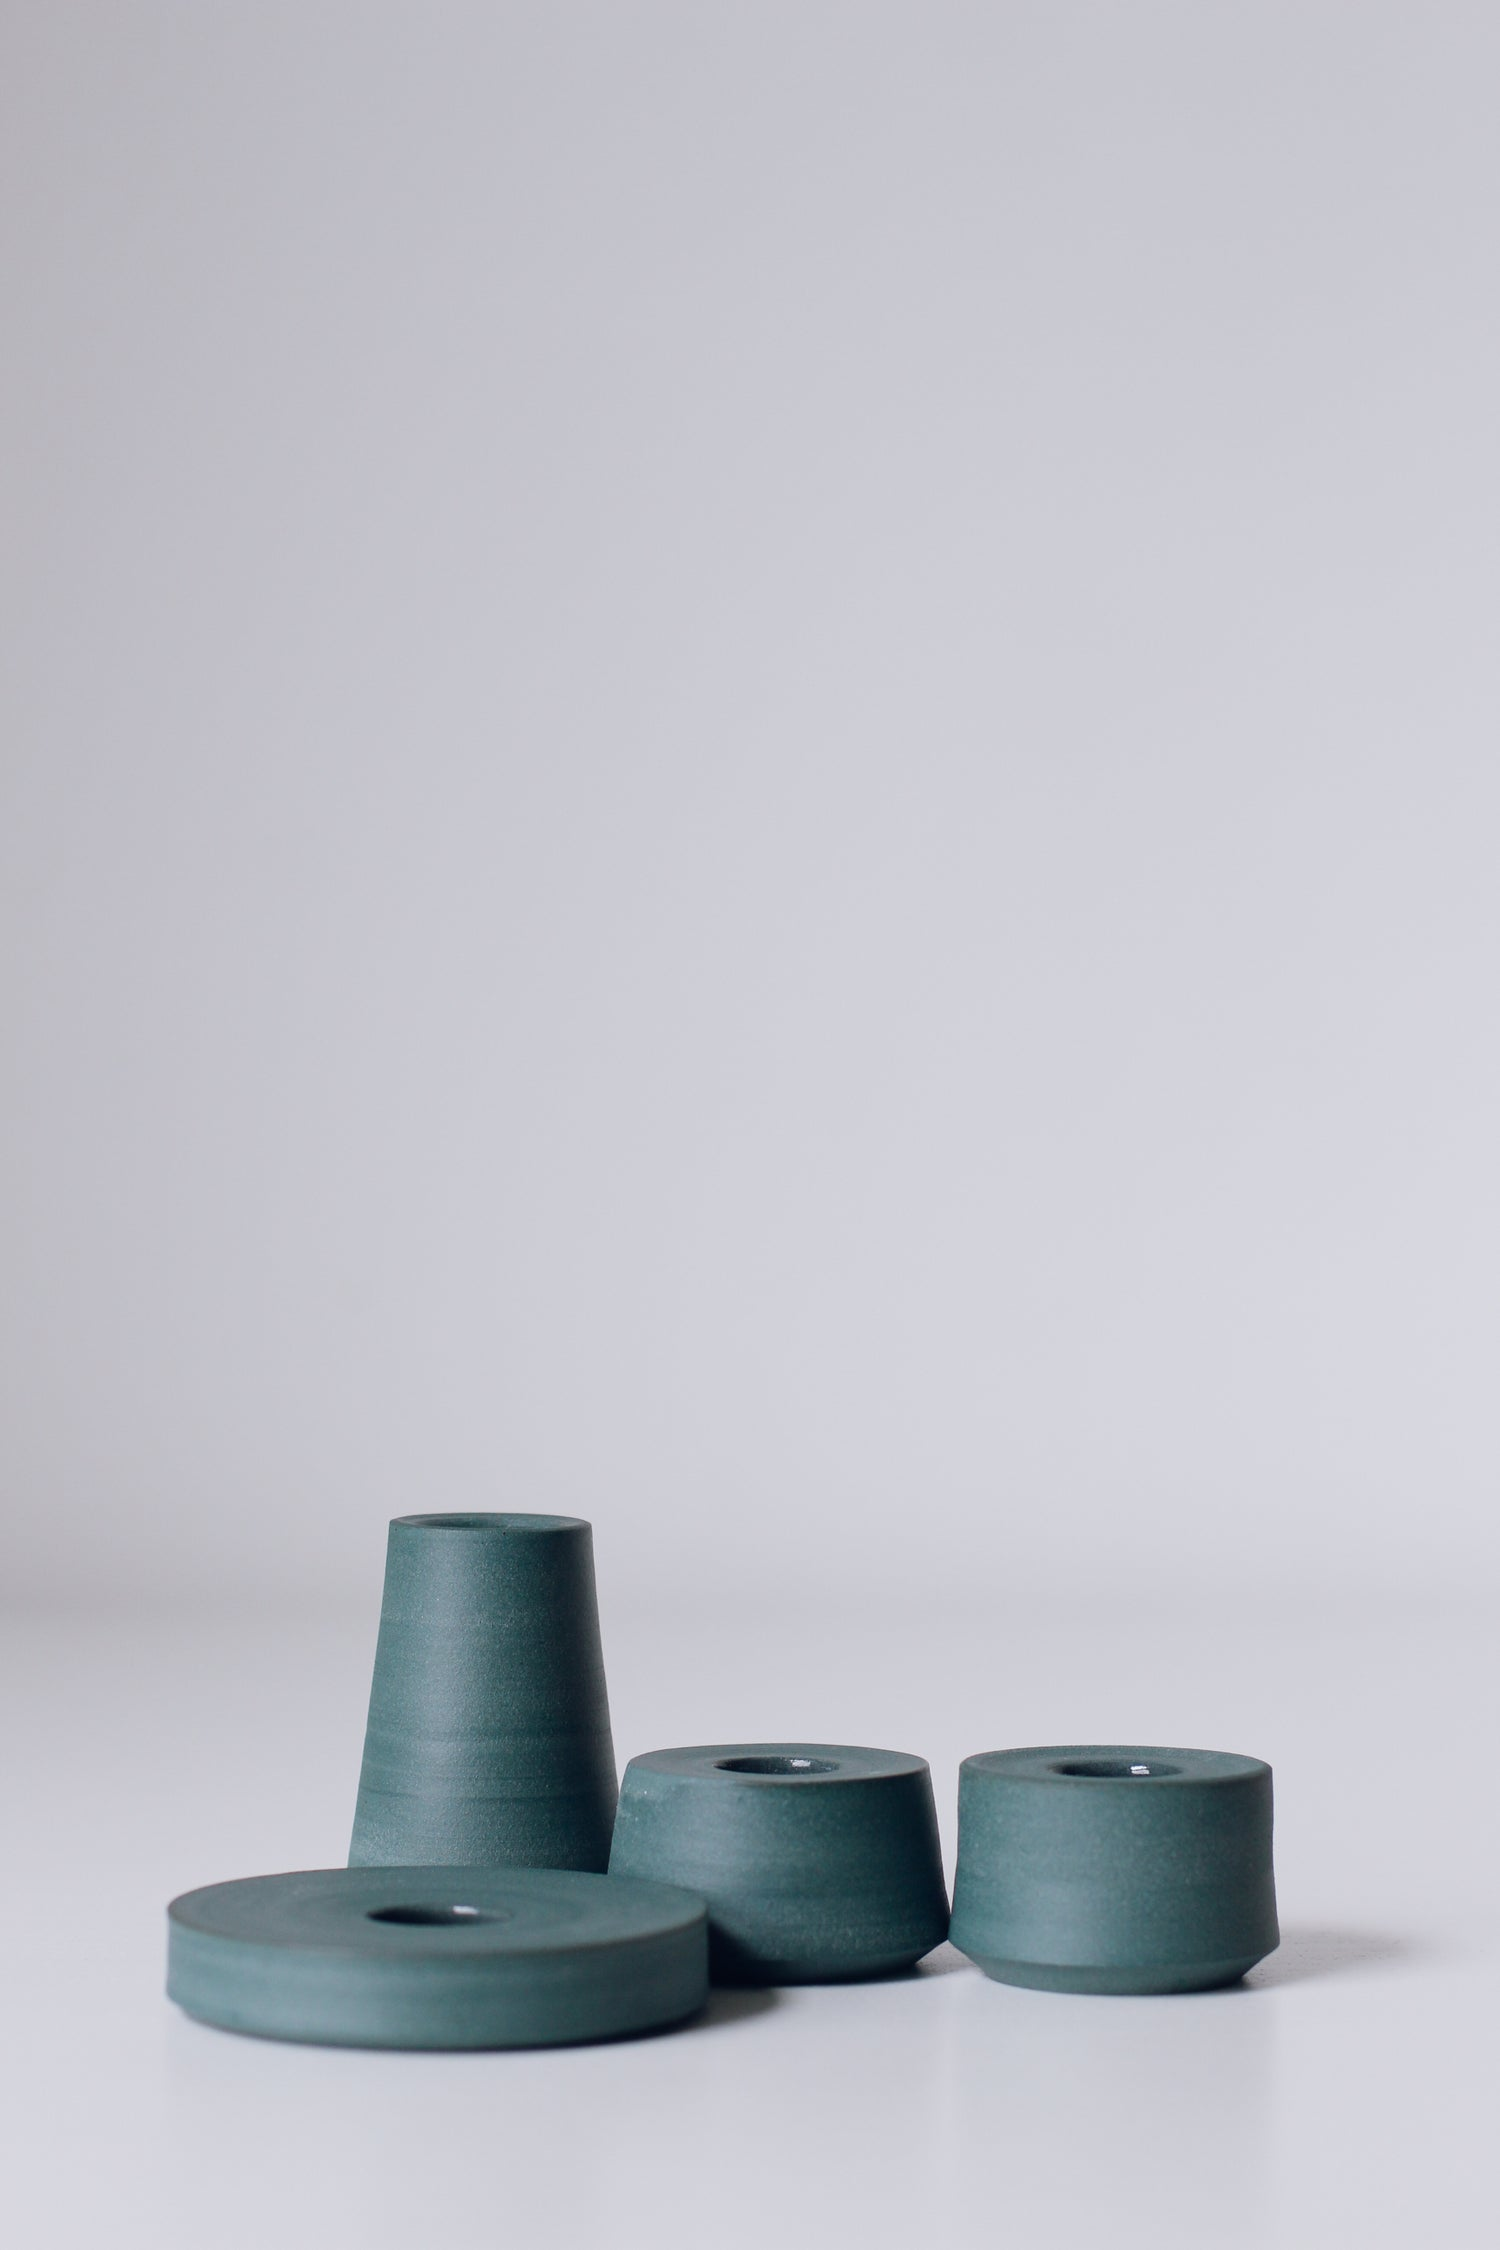 Image of Set of 2 Stacking Candleholders